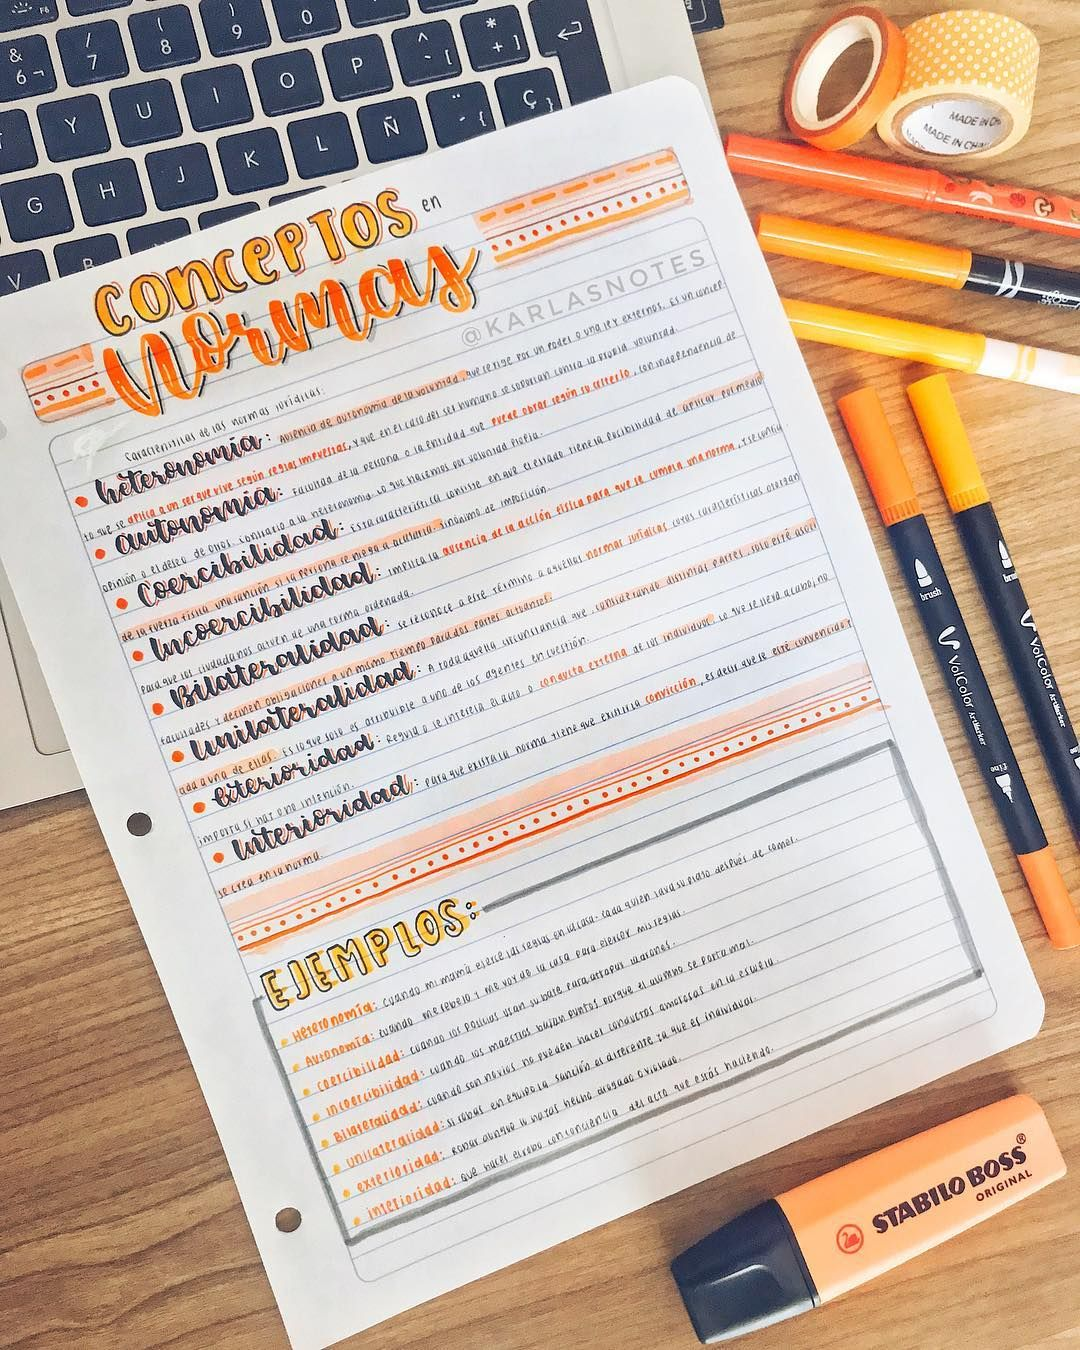 24 Pretty Notes Ideas Pretty Notes Notes Inspiration School Notes